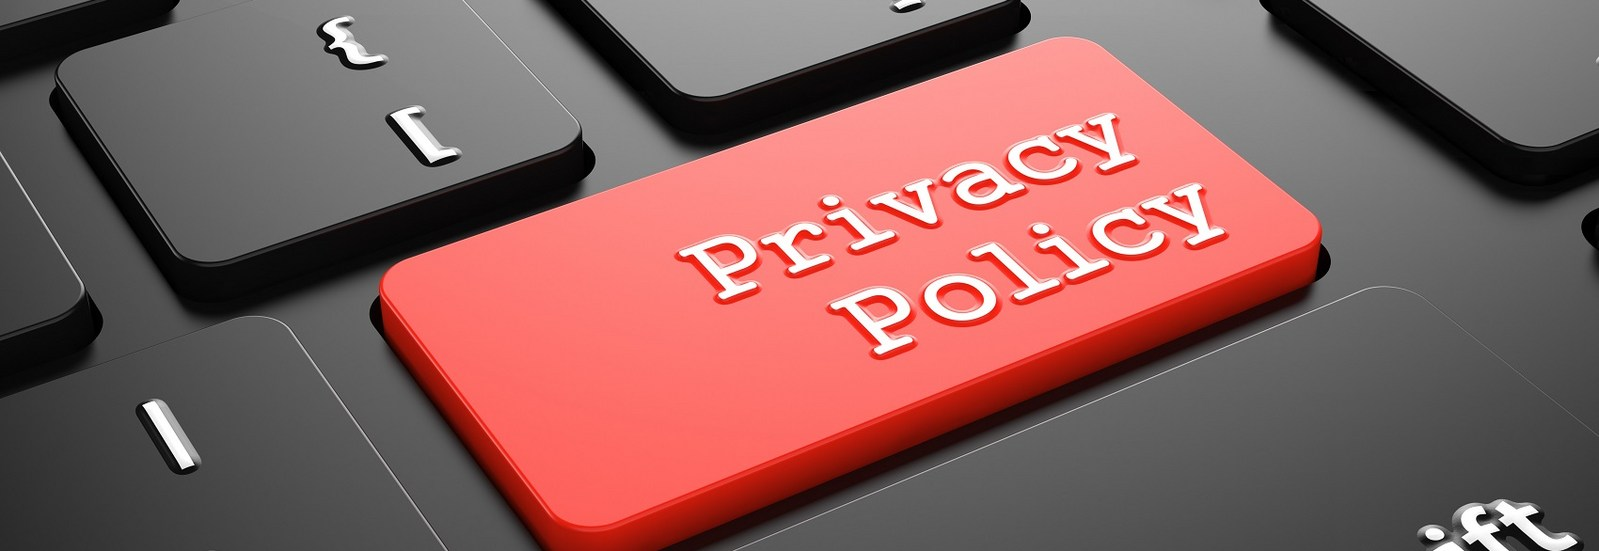 privacy policy By making this selection, you will be redirected to the homepage of the chosen country.